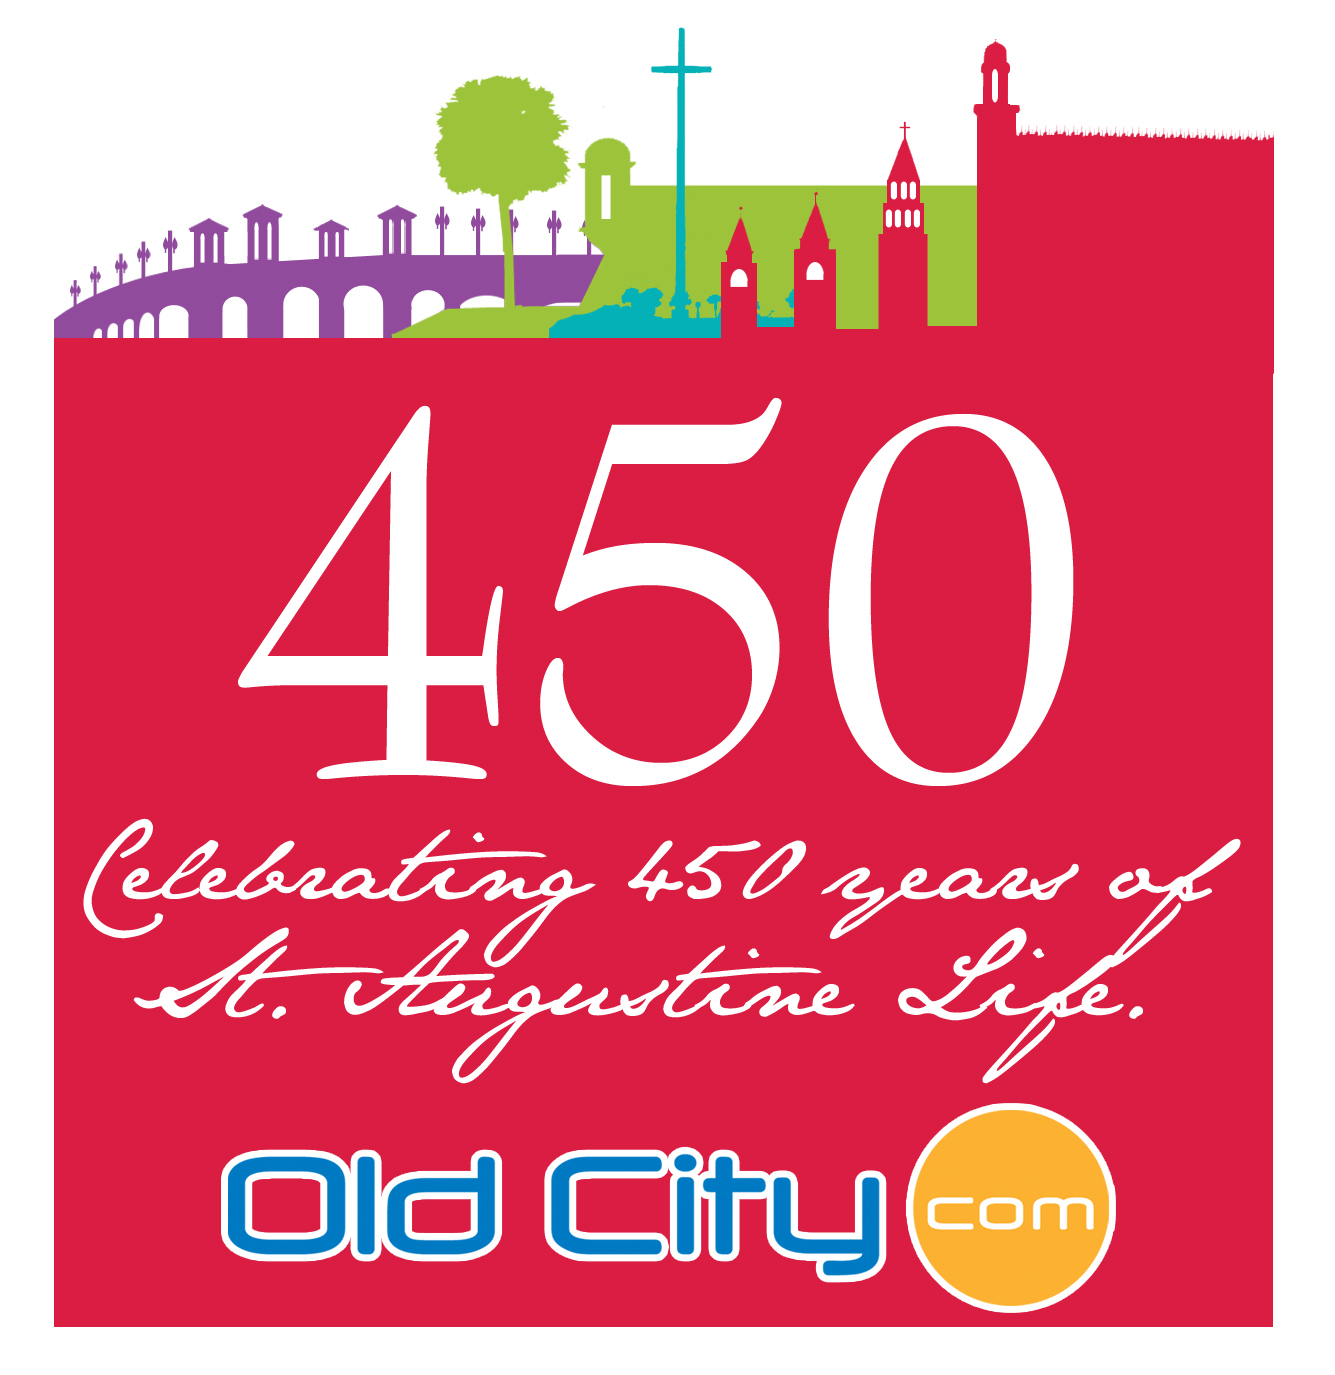 St. Augustine's 450th Birthday Celebration